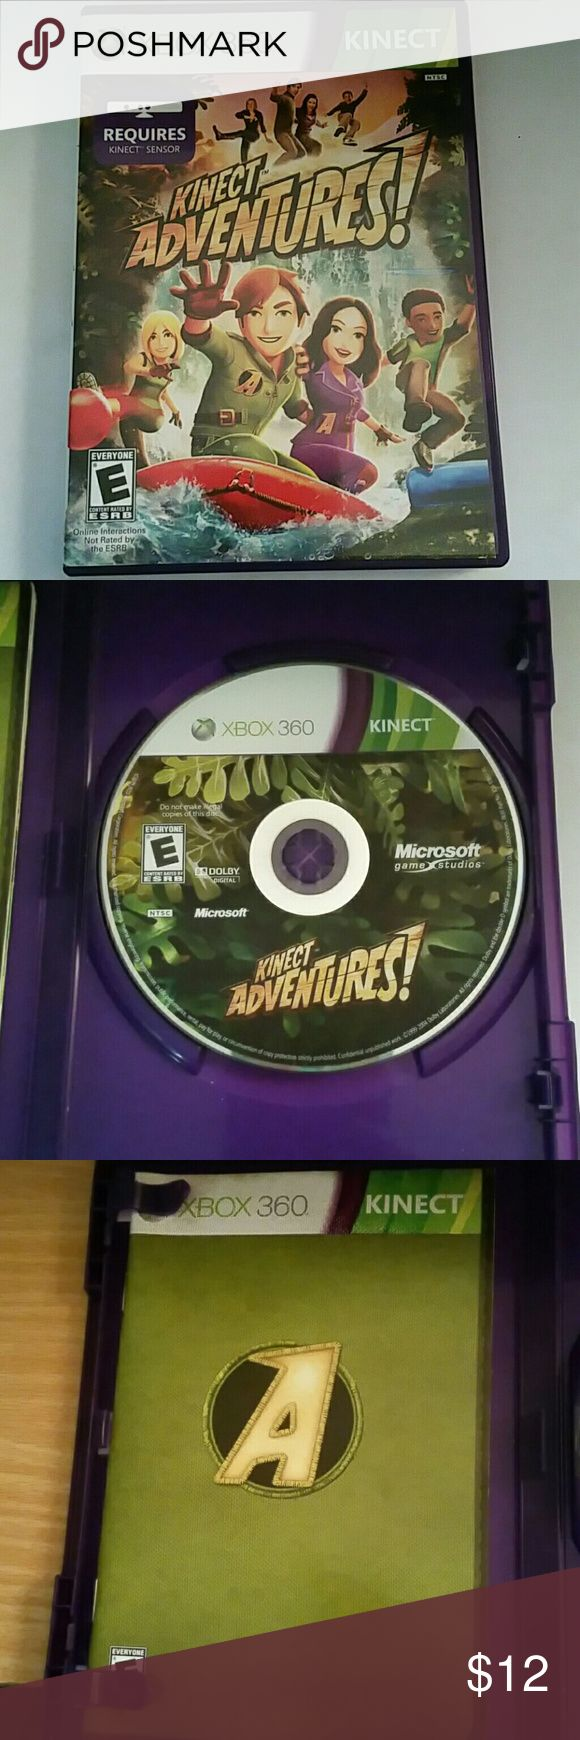 Xbox 360 Kinect Adventures Xbox 360 Kinect Adventures. Used but very well taken care of. Includes case, game and game manual. I have other games available, check out my closet.   Let me know if you have any questions. Happy Poshing!! Other